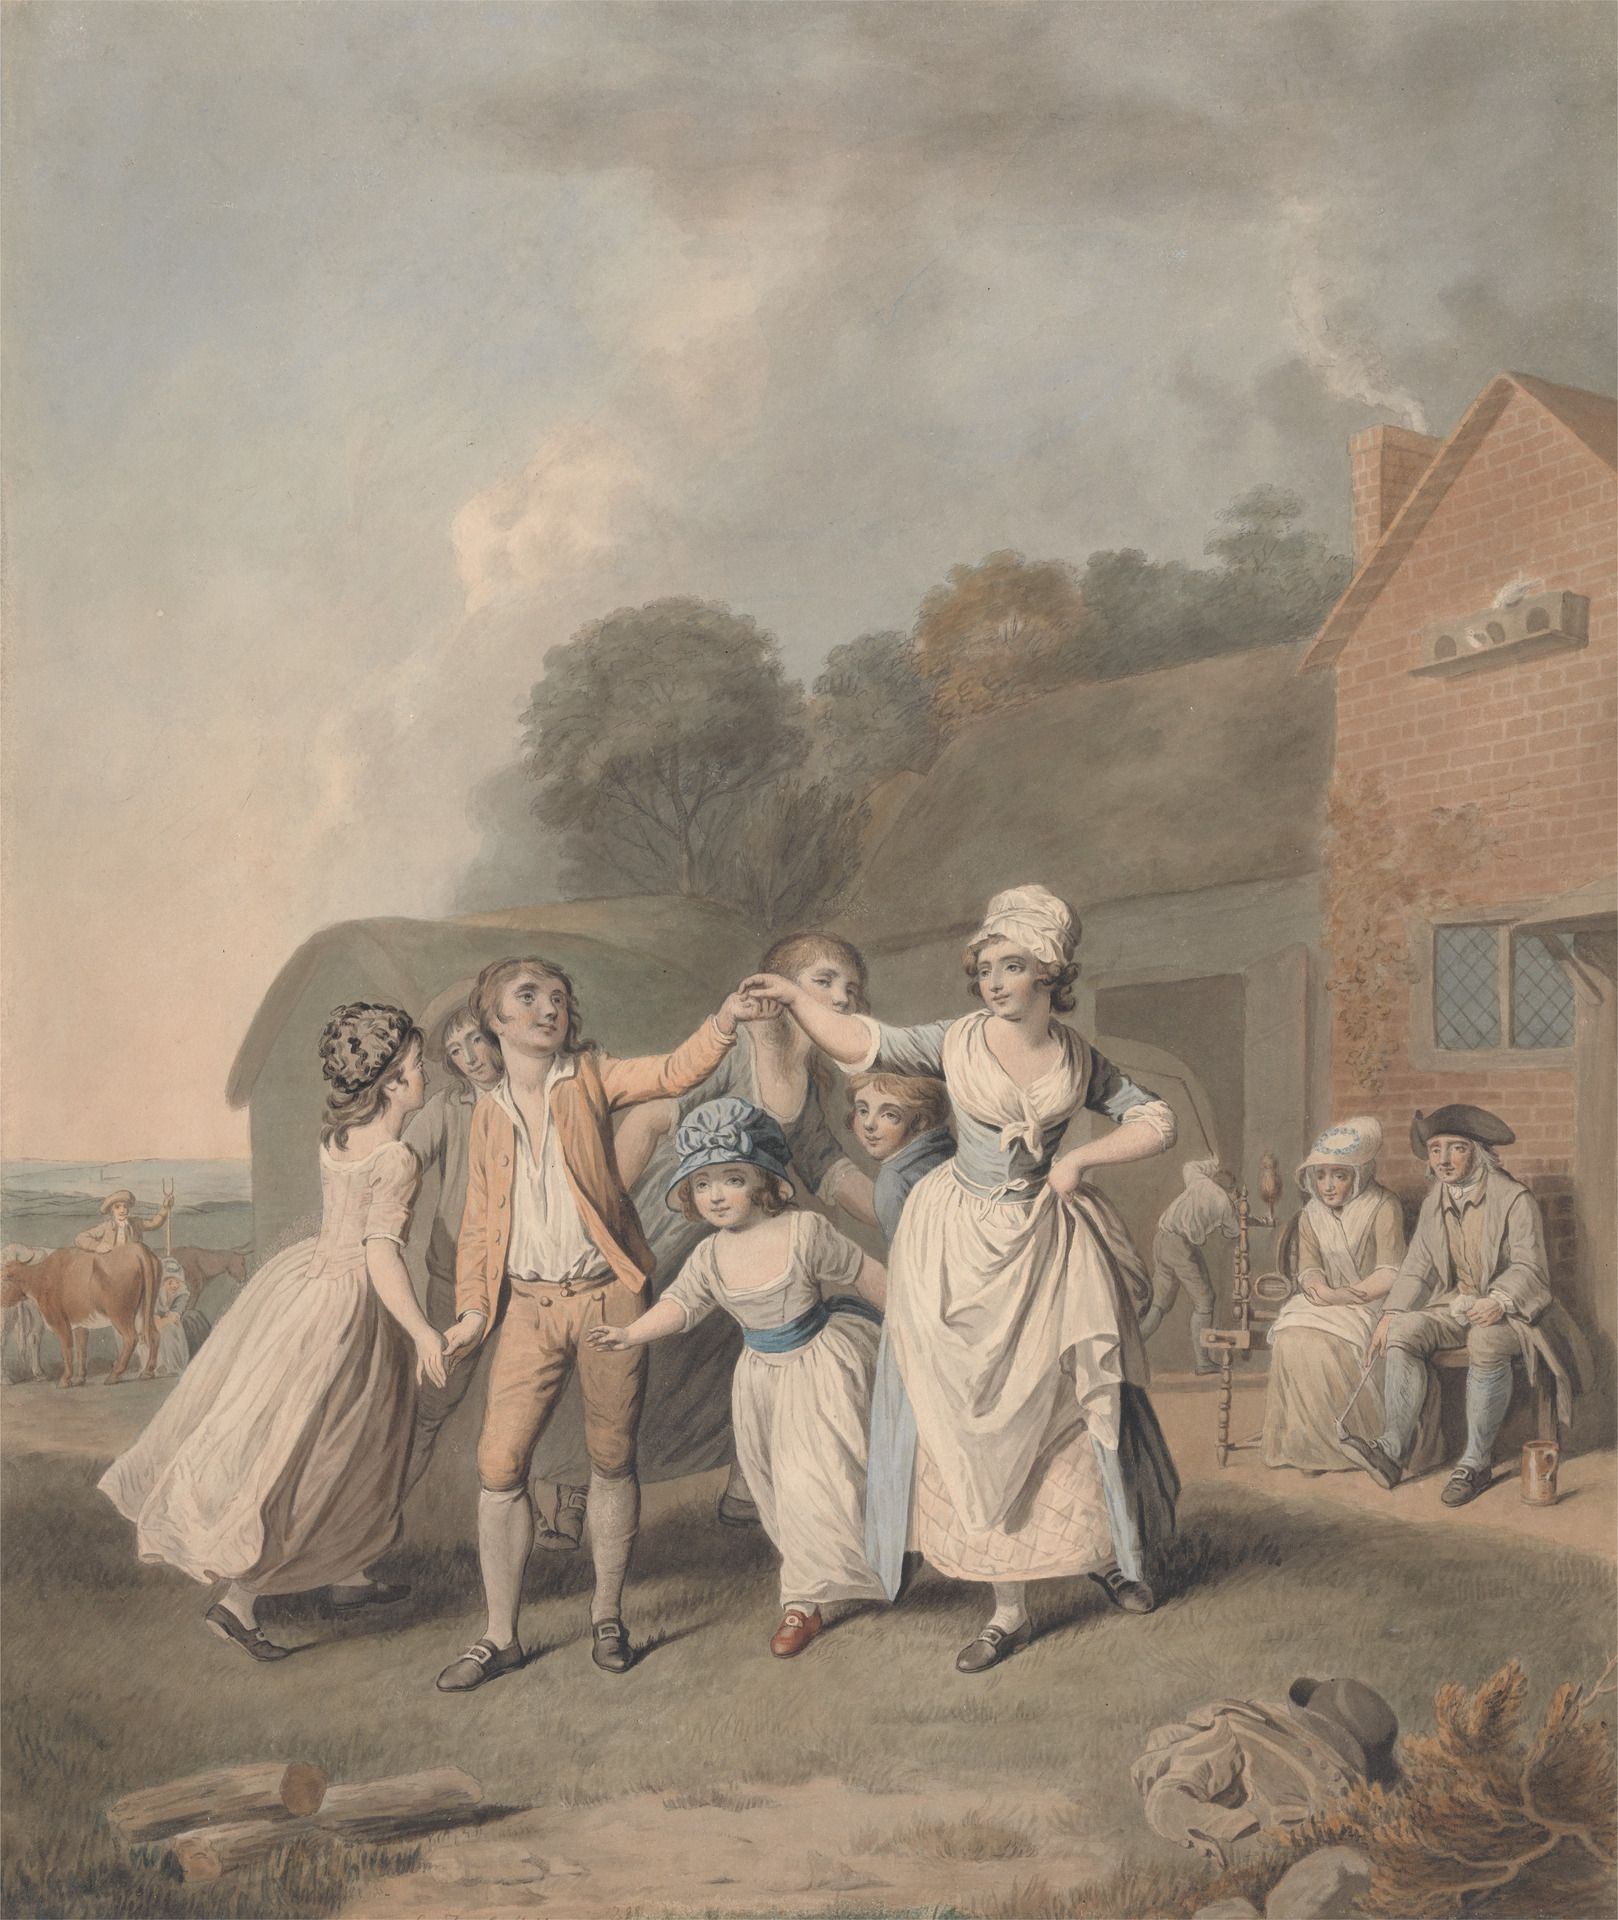 Children Dancing  by George Townly Stubbs  ca. 1798  Yale Center for British Art